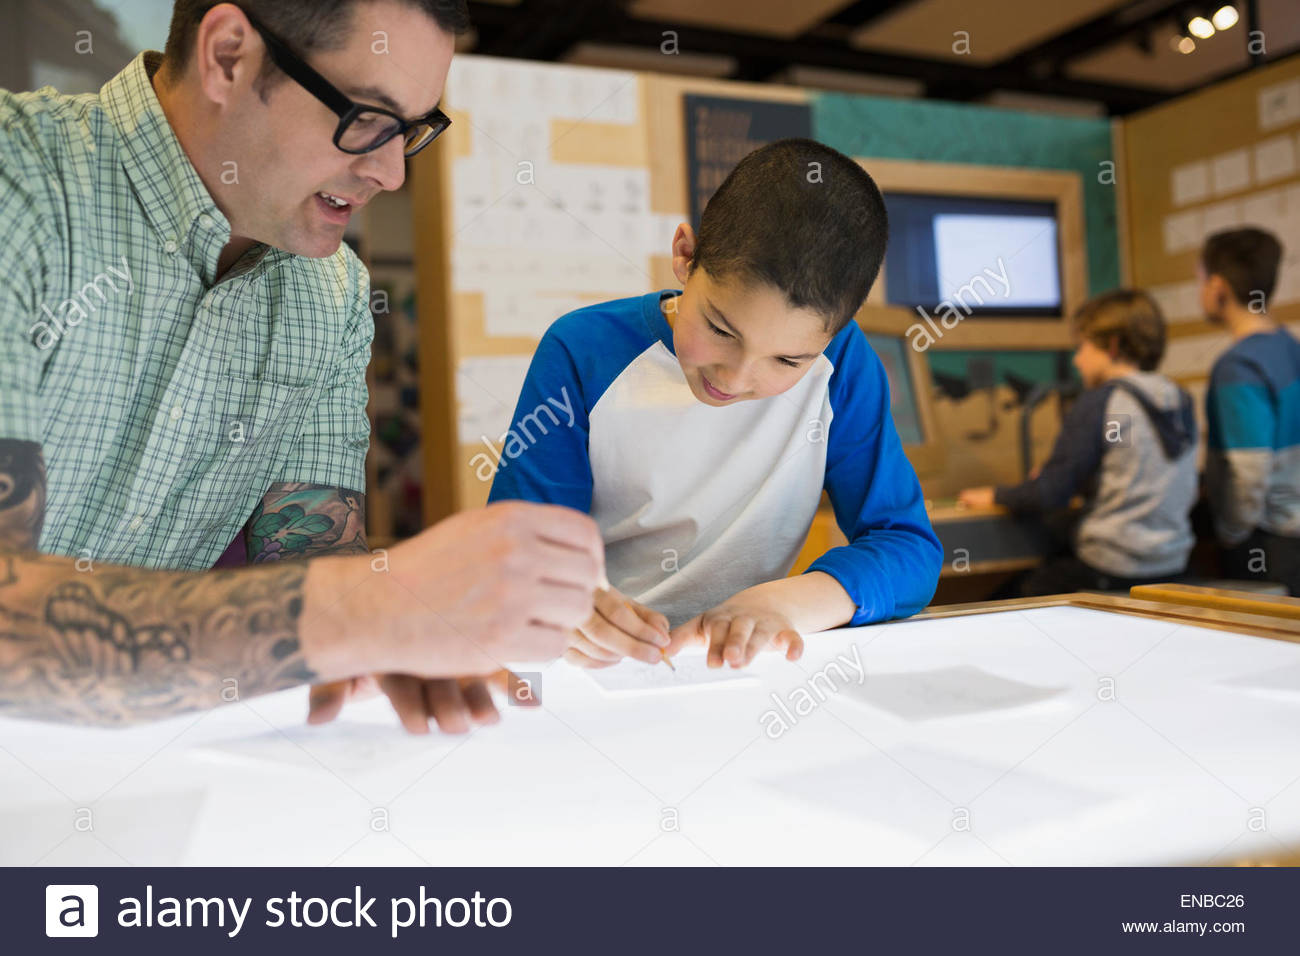 Teacher and student tracing light table science center - Stock Image